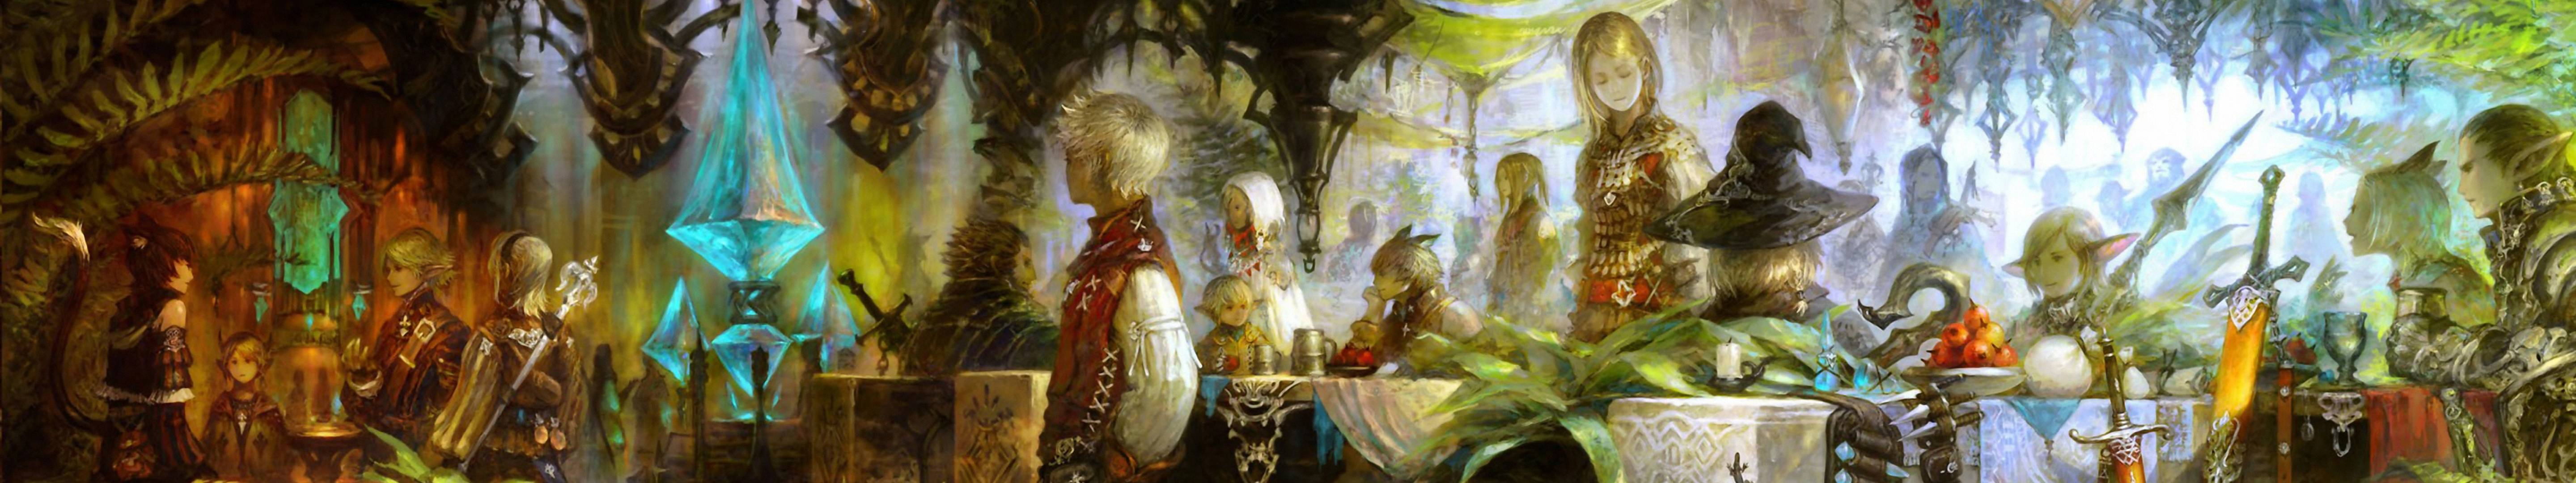 Final fantasy xiv full hd wallpaper and background image 5760x1080 video game final fantasy xiv wallpaper voltagebd Image collections